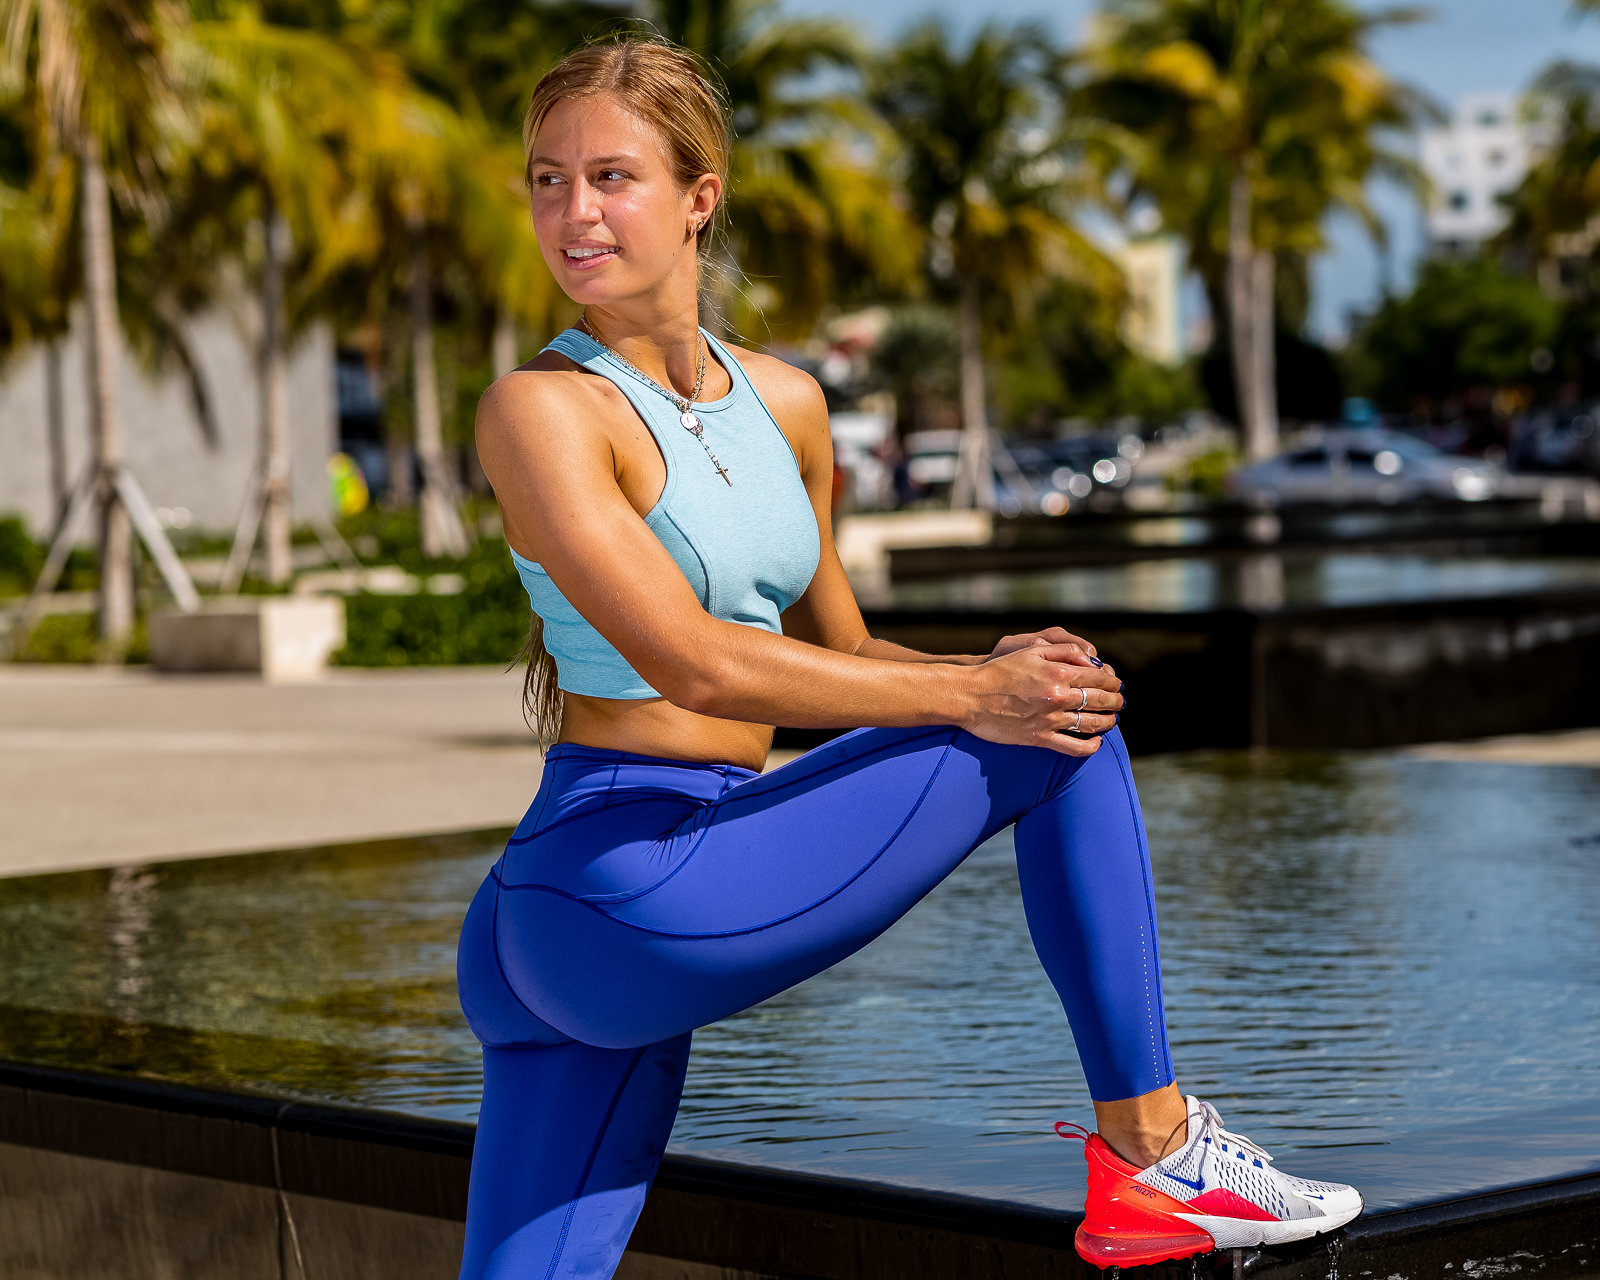 Fitness and lifestyle photo session with Aggie Buedo on Tuesday, March 12, 2019 at the South Pointe Park in Miami Beach, FL.